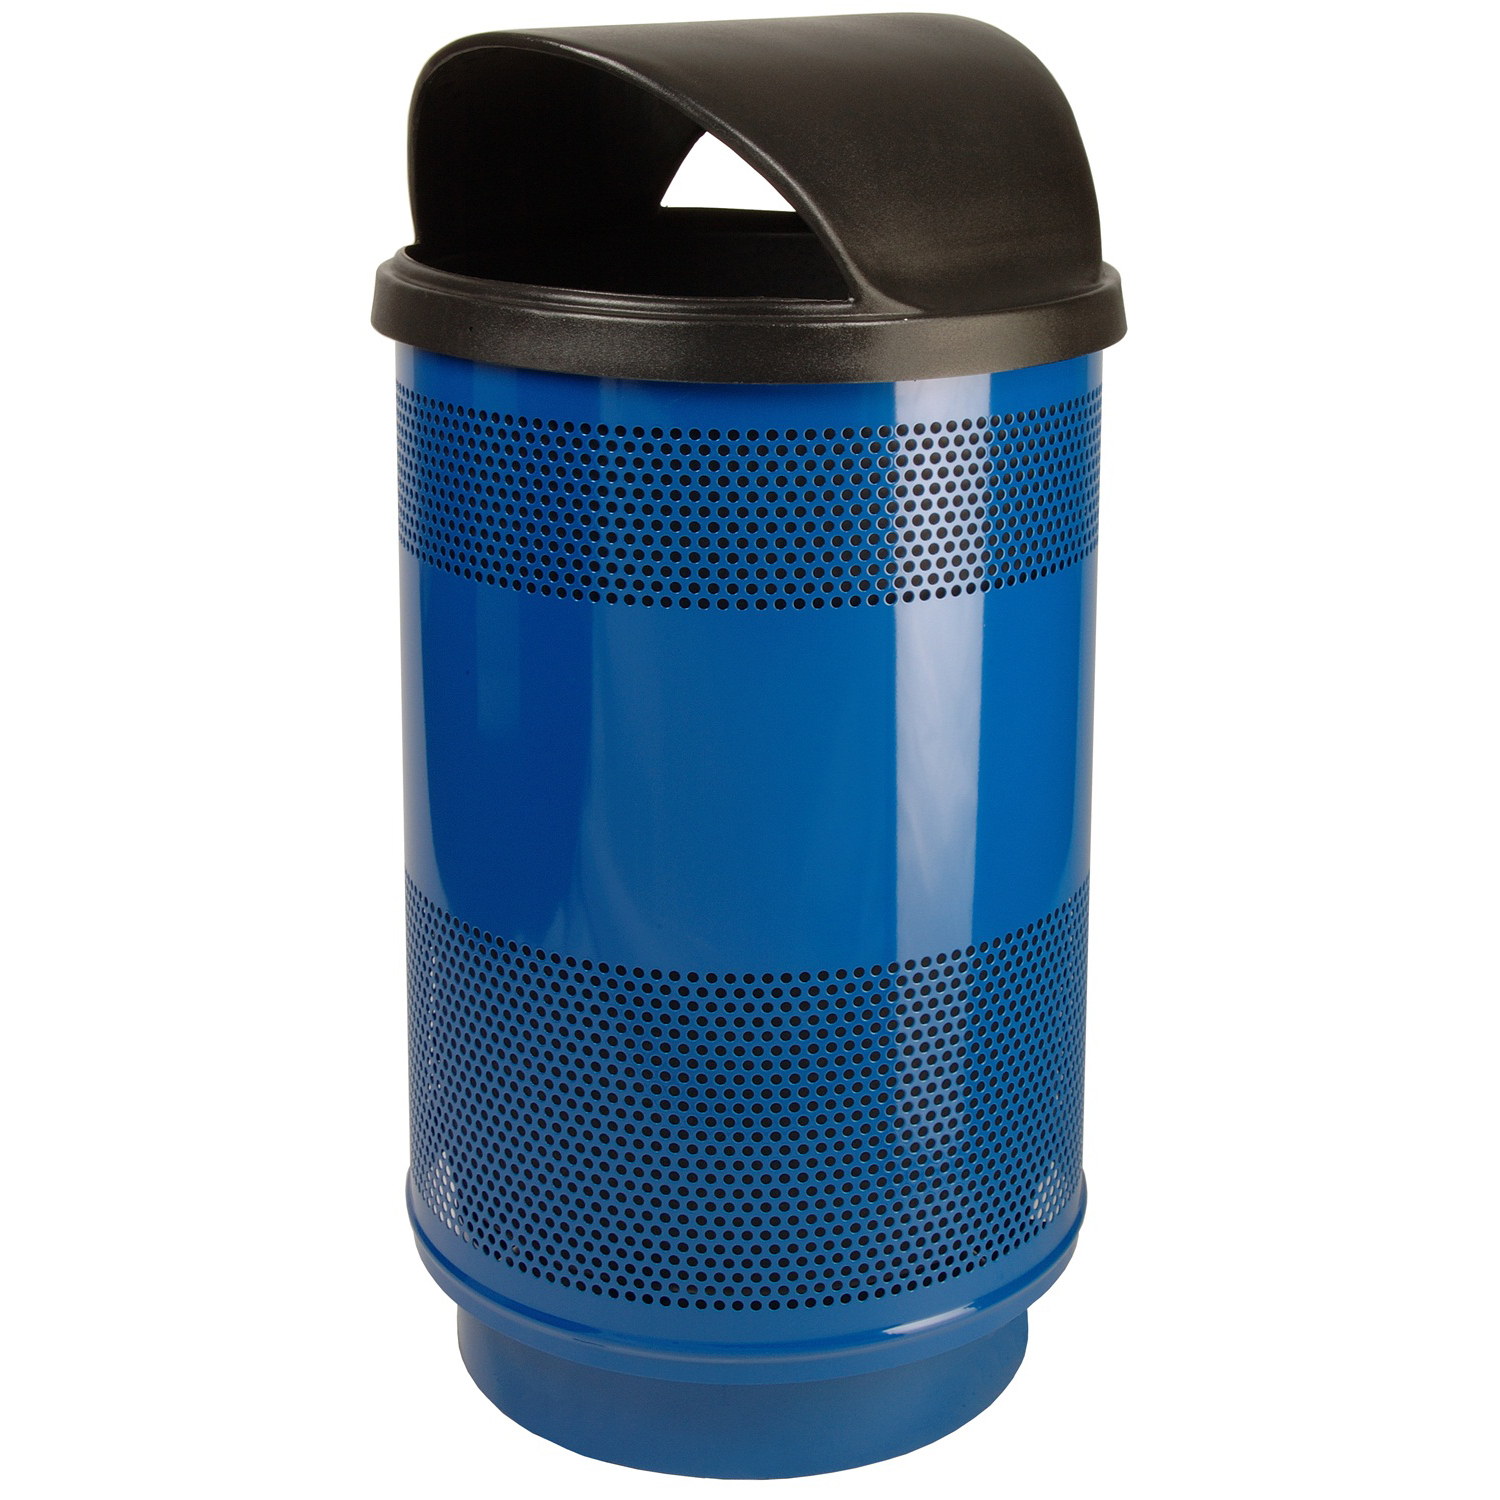 55gallon perforated waste receptacle with hood top